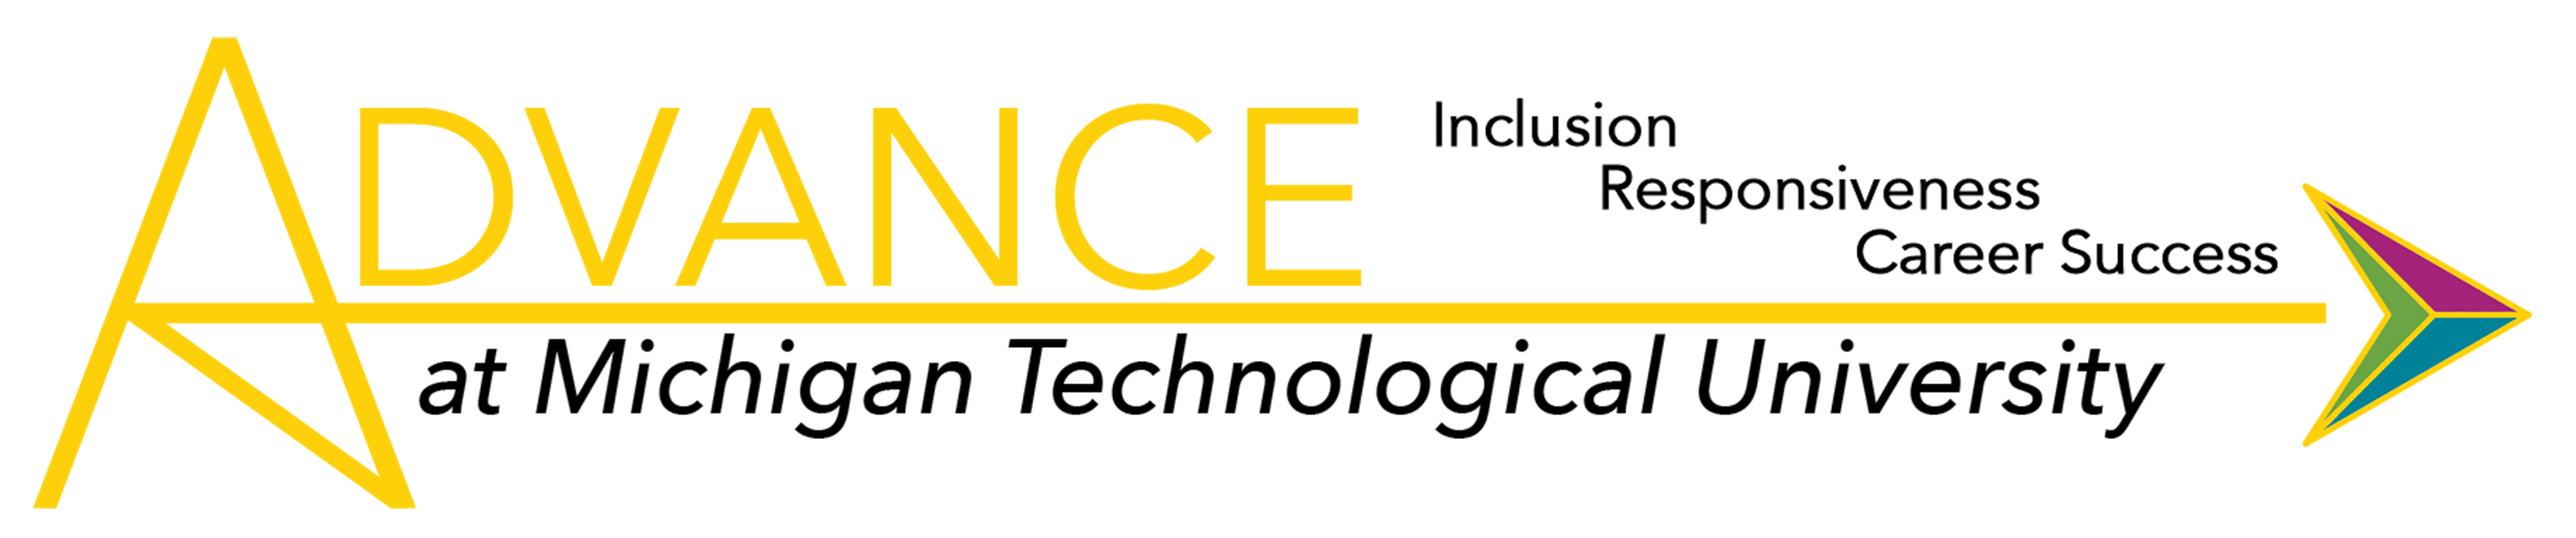 ADVANCE at Michigan Tech: Incluision. Responsiveness. Career Success.